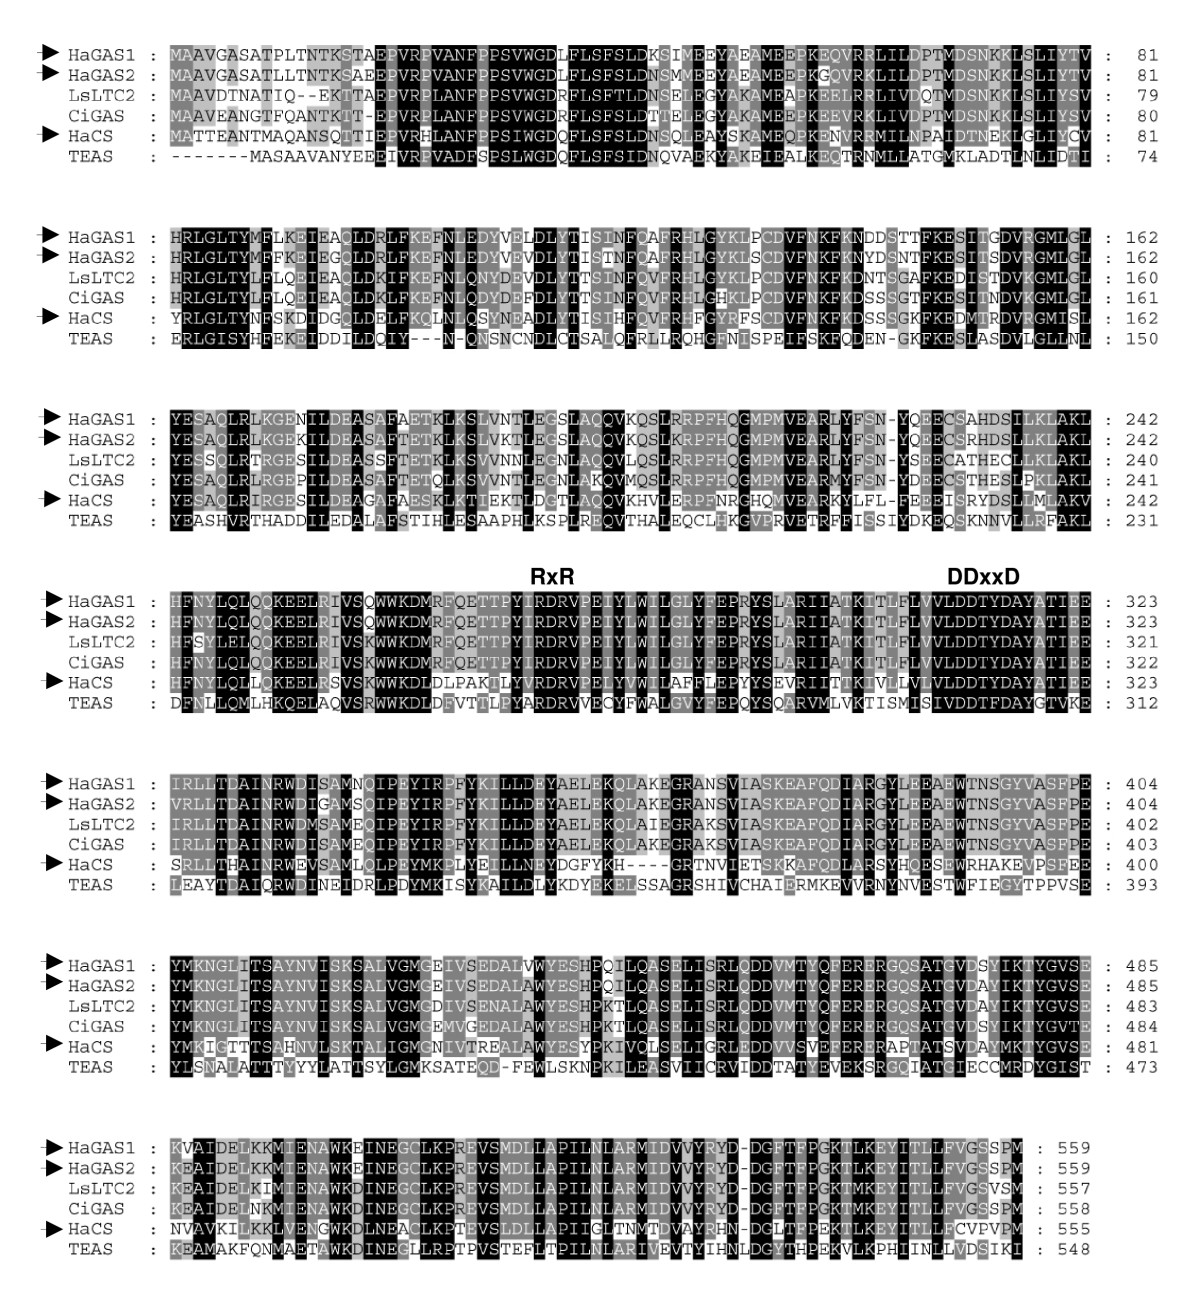 http://static-content.springer.com/image/art%3A10.1186%2F1471-2229-9-86/MediaObjects/12870_2008_Article_428_Fig2_HTML.jpg